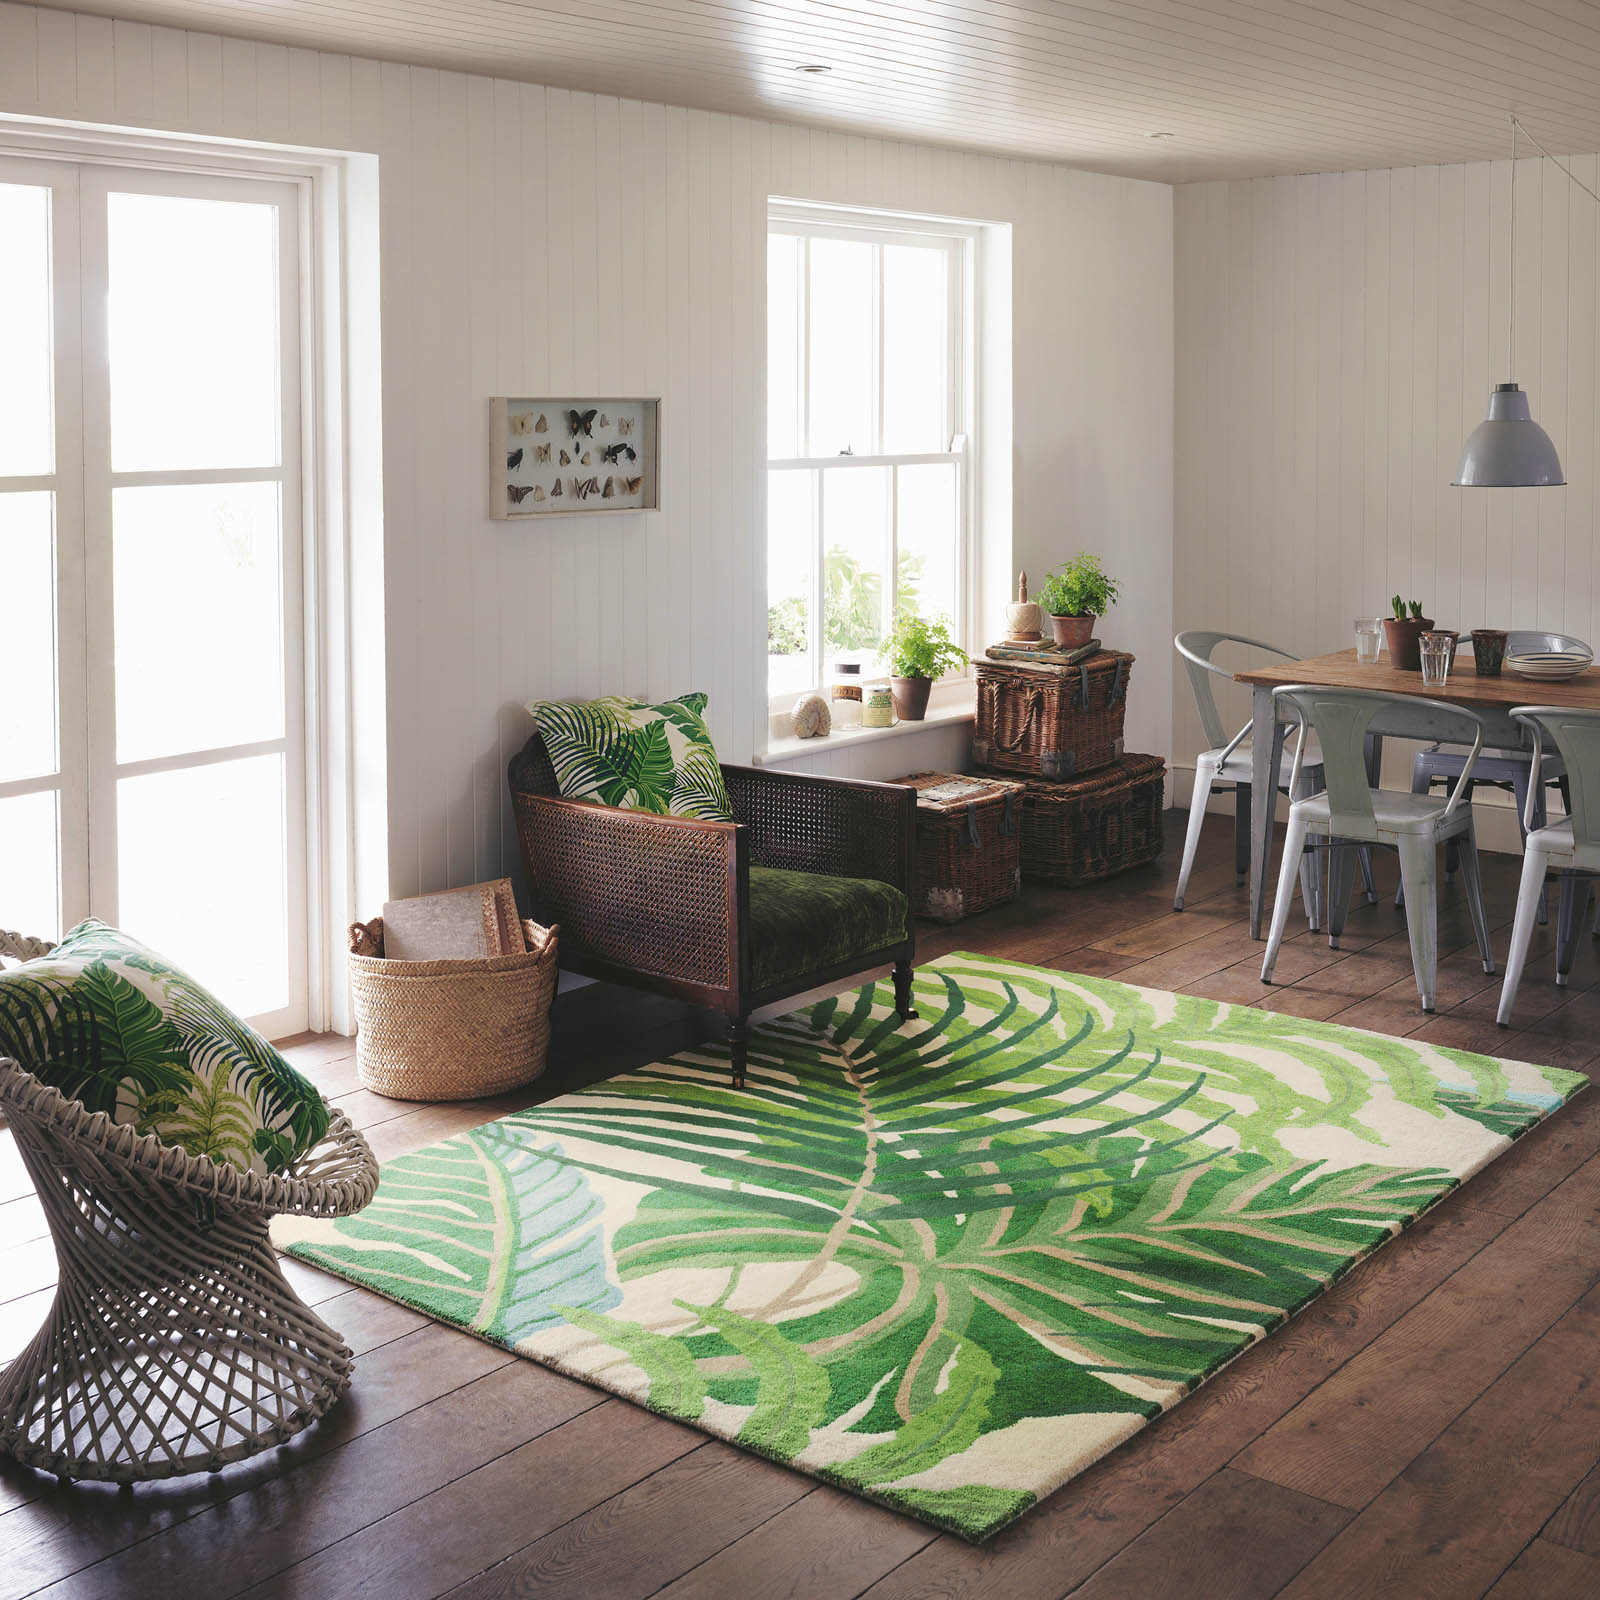 sanderson designer rug brand from the rug seller